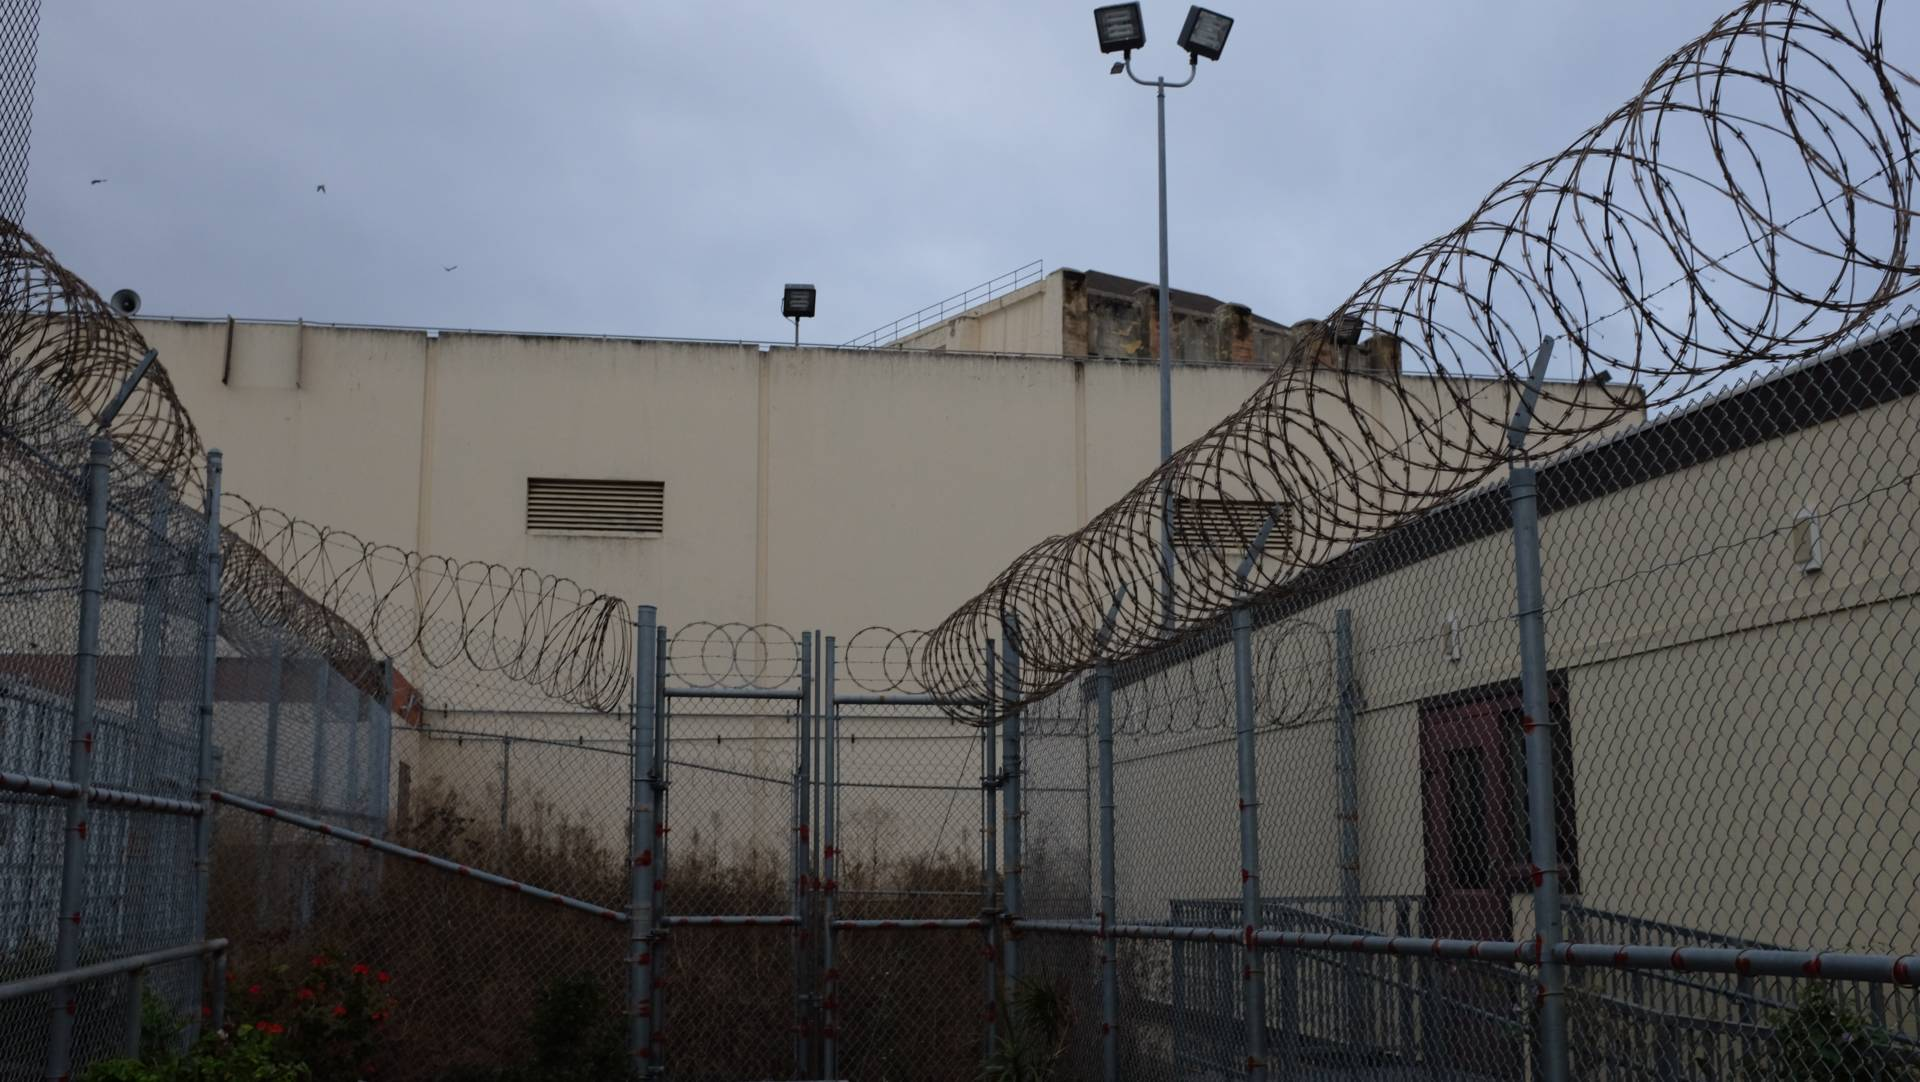 Thanksgiving in San Quentin - Part I